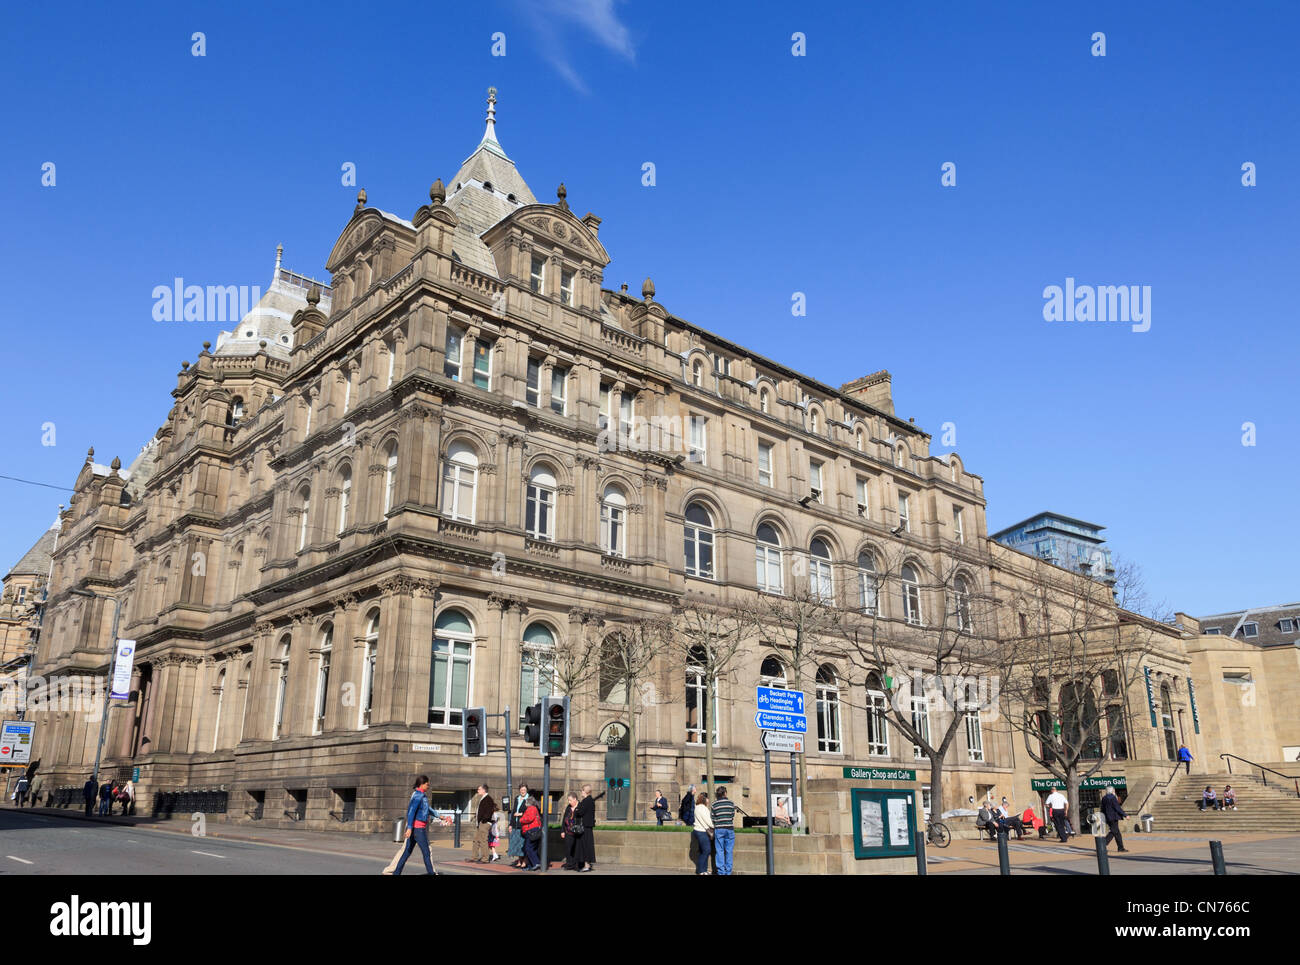 Central Library and Art Gallery building. Calverley Street, Leeds, West Yorkshire, England, UK. - Stock Image